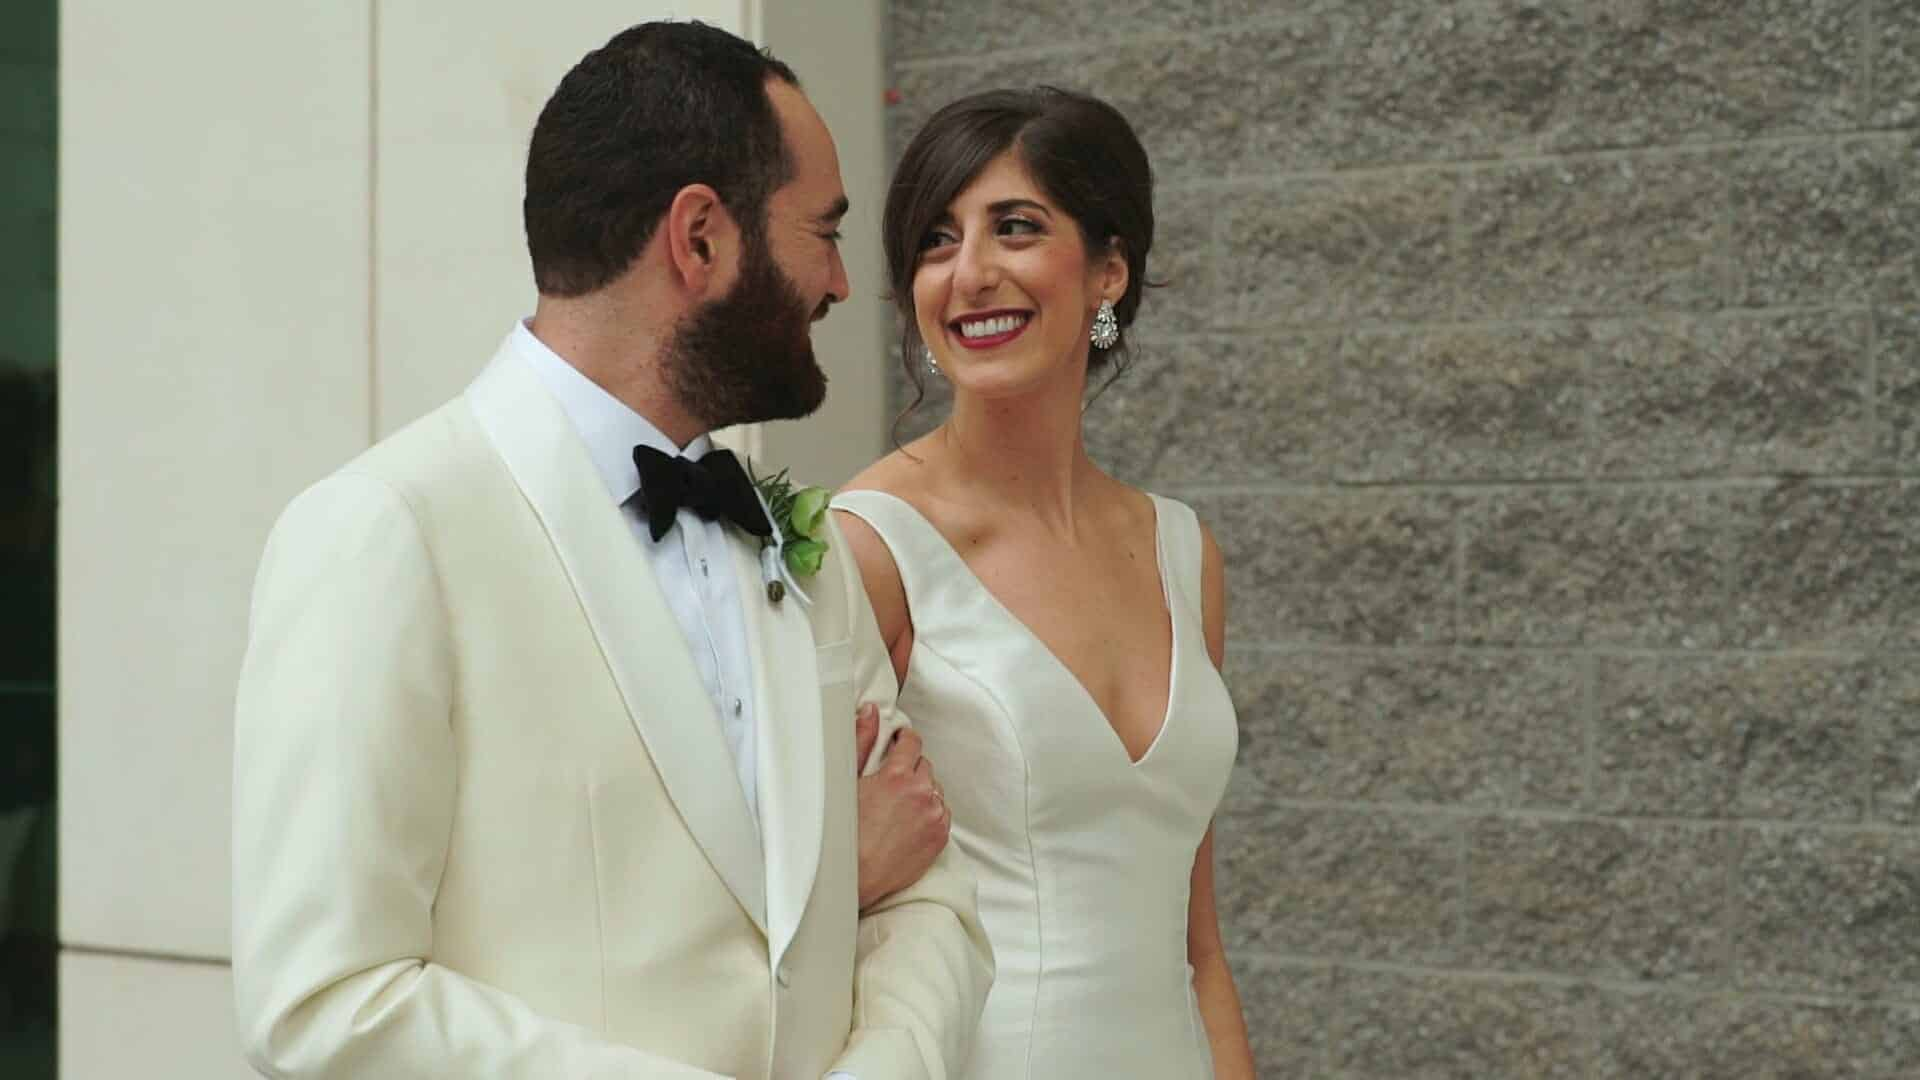 Downtown Charlotte Jewish Wedding